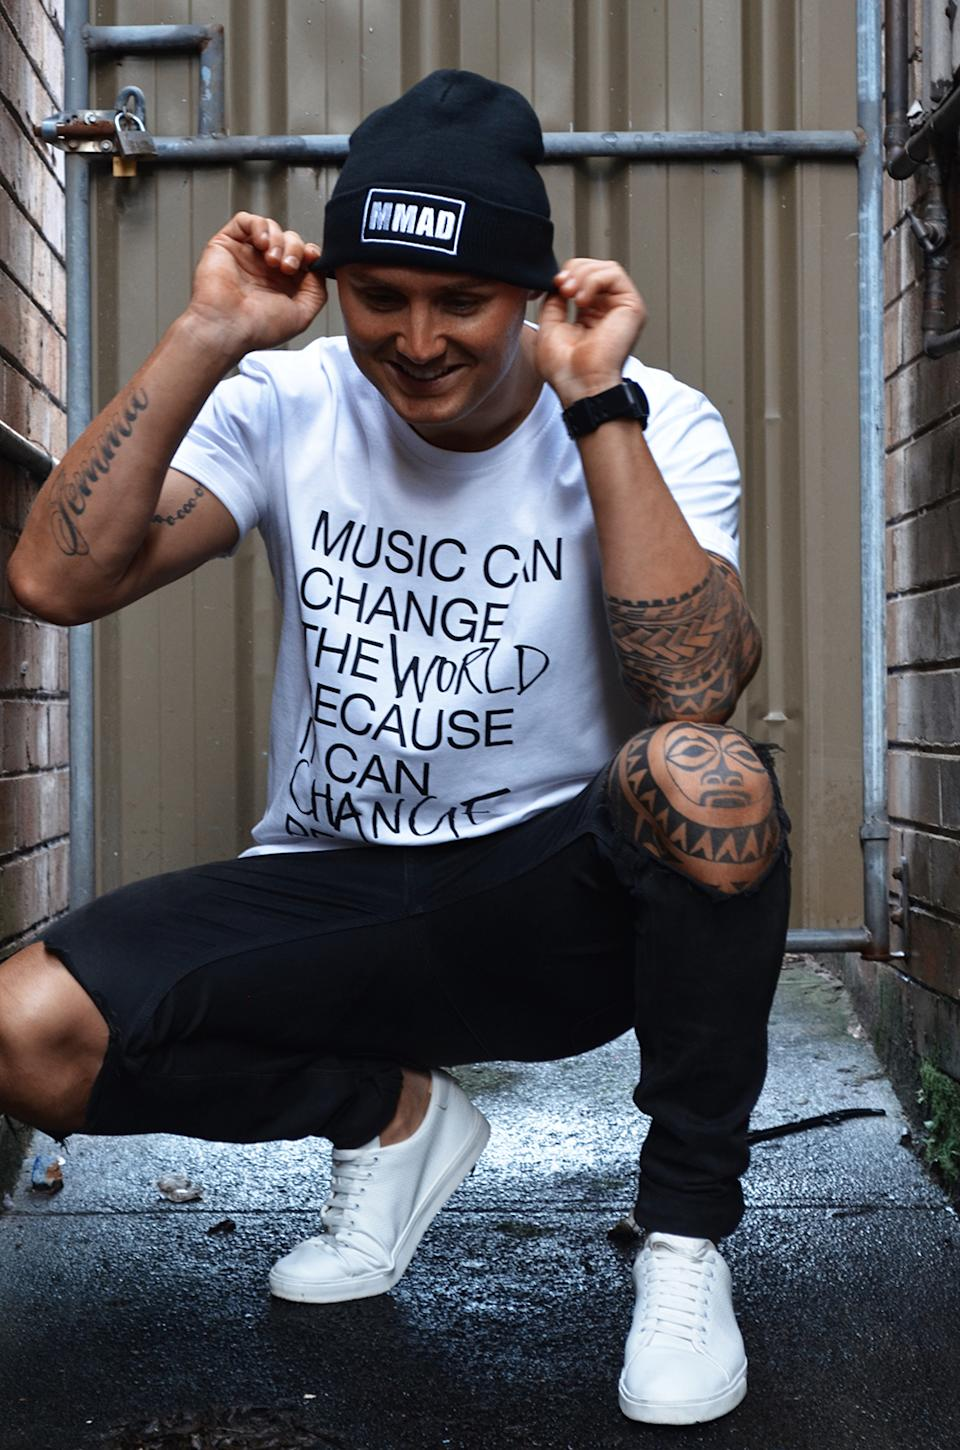 The rapper says music helped him 'survive'. Photo: Supplied